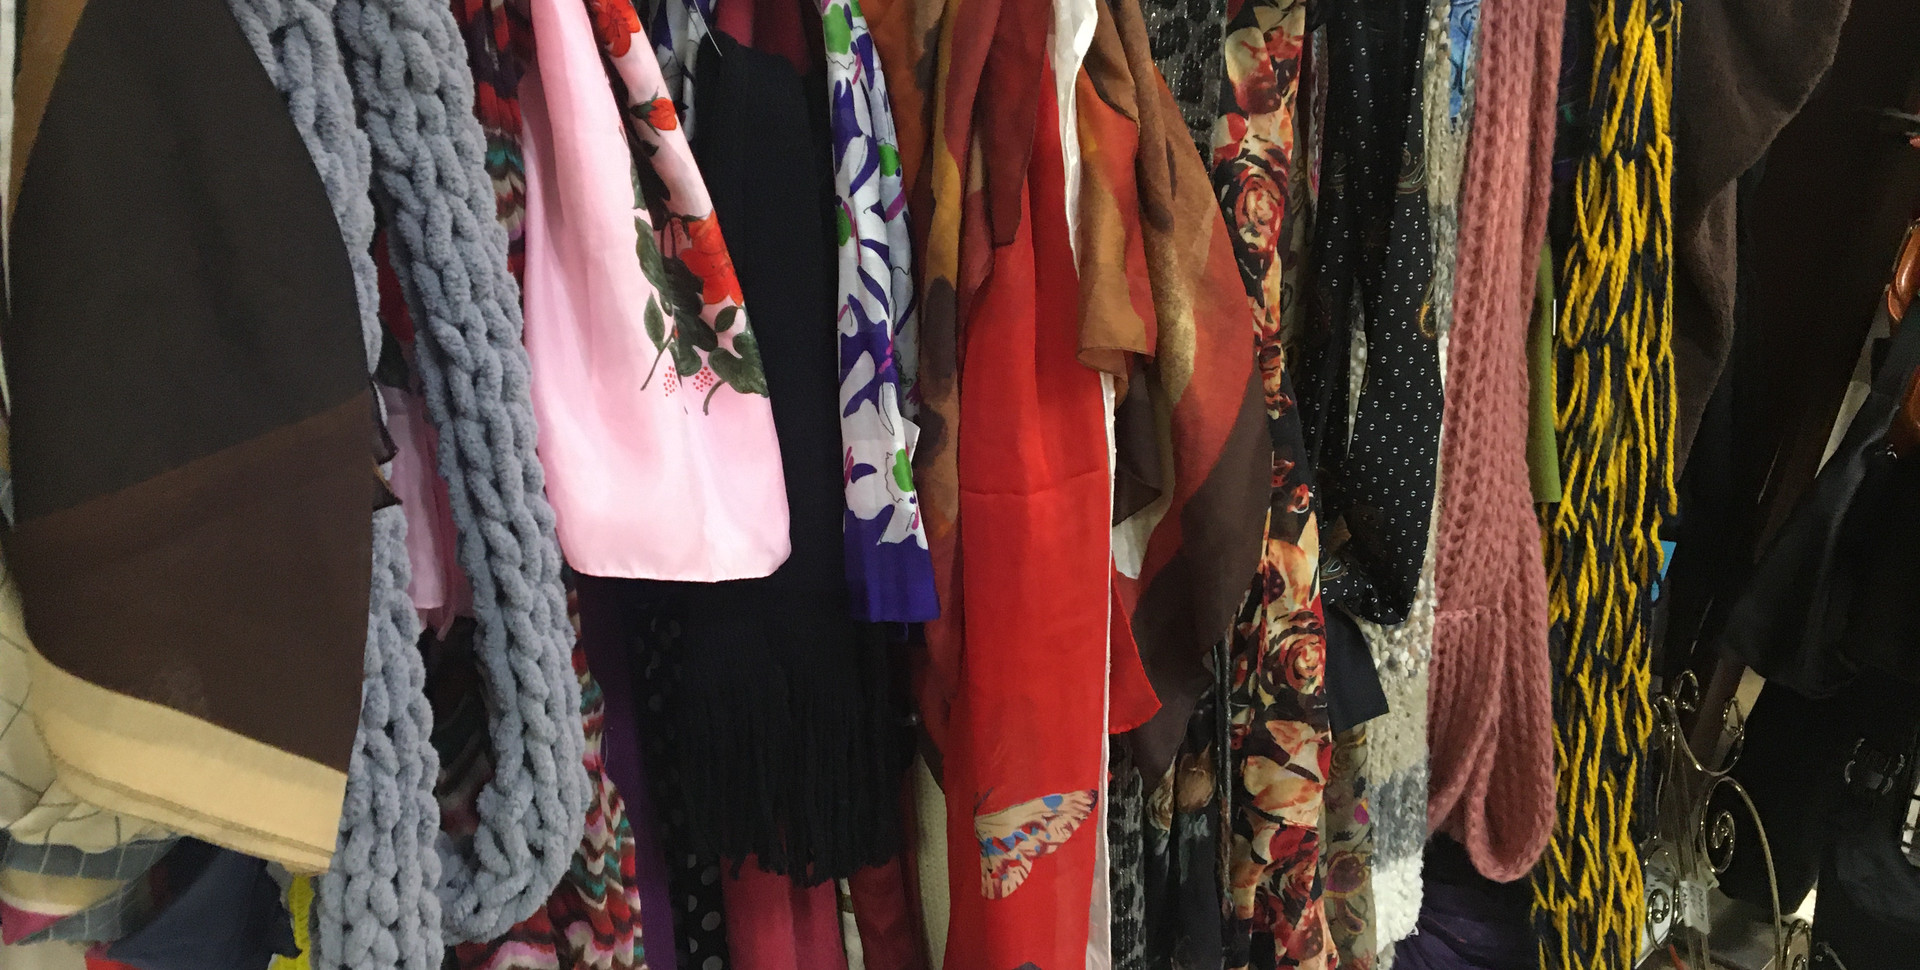 Scarves, purses, and accessories